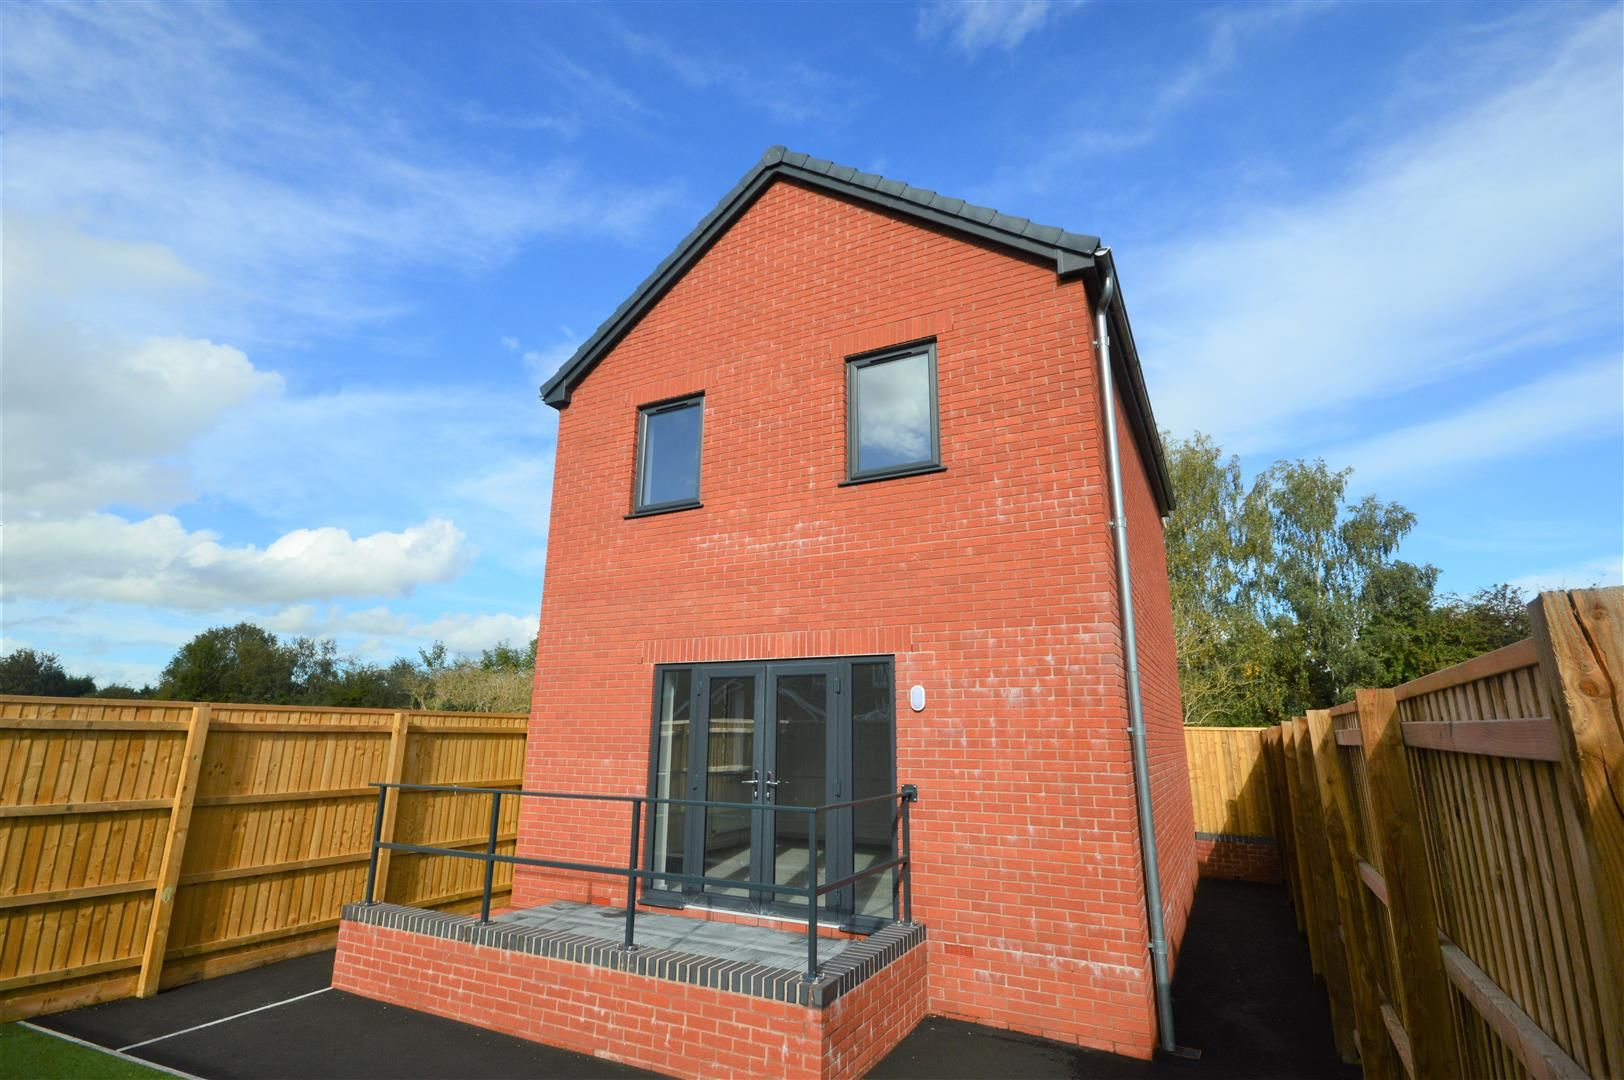 2 bed detached for sale in Leominster, HR6